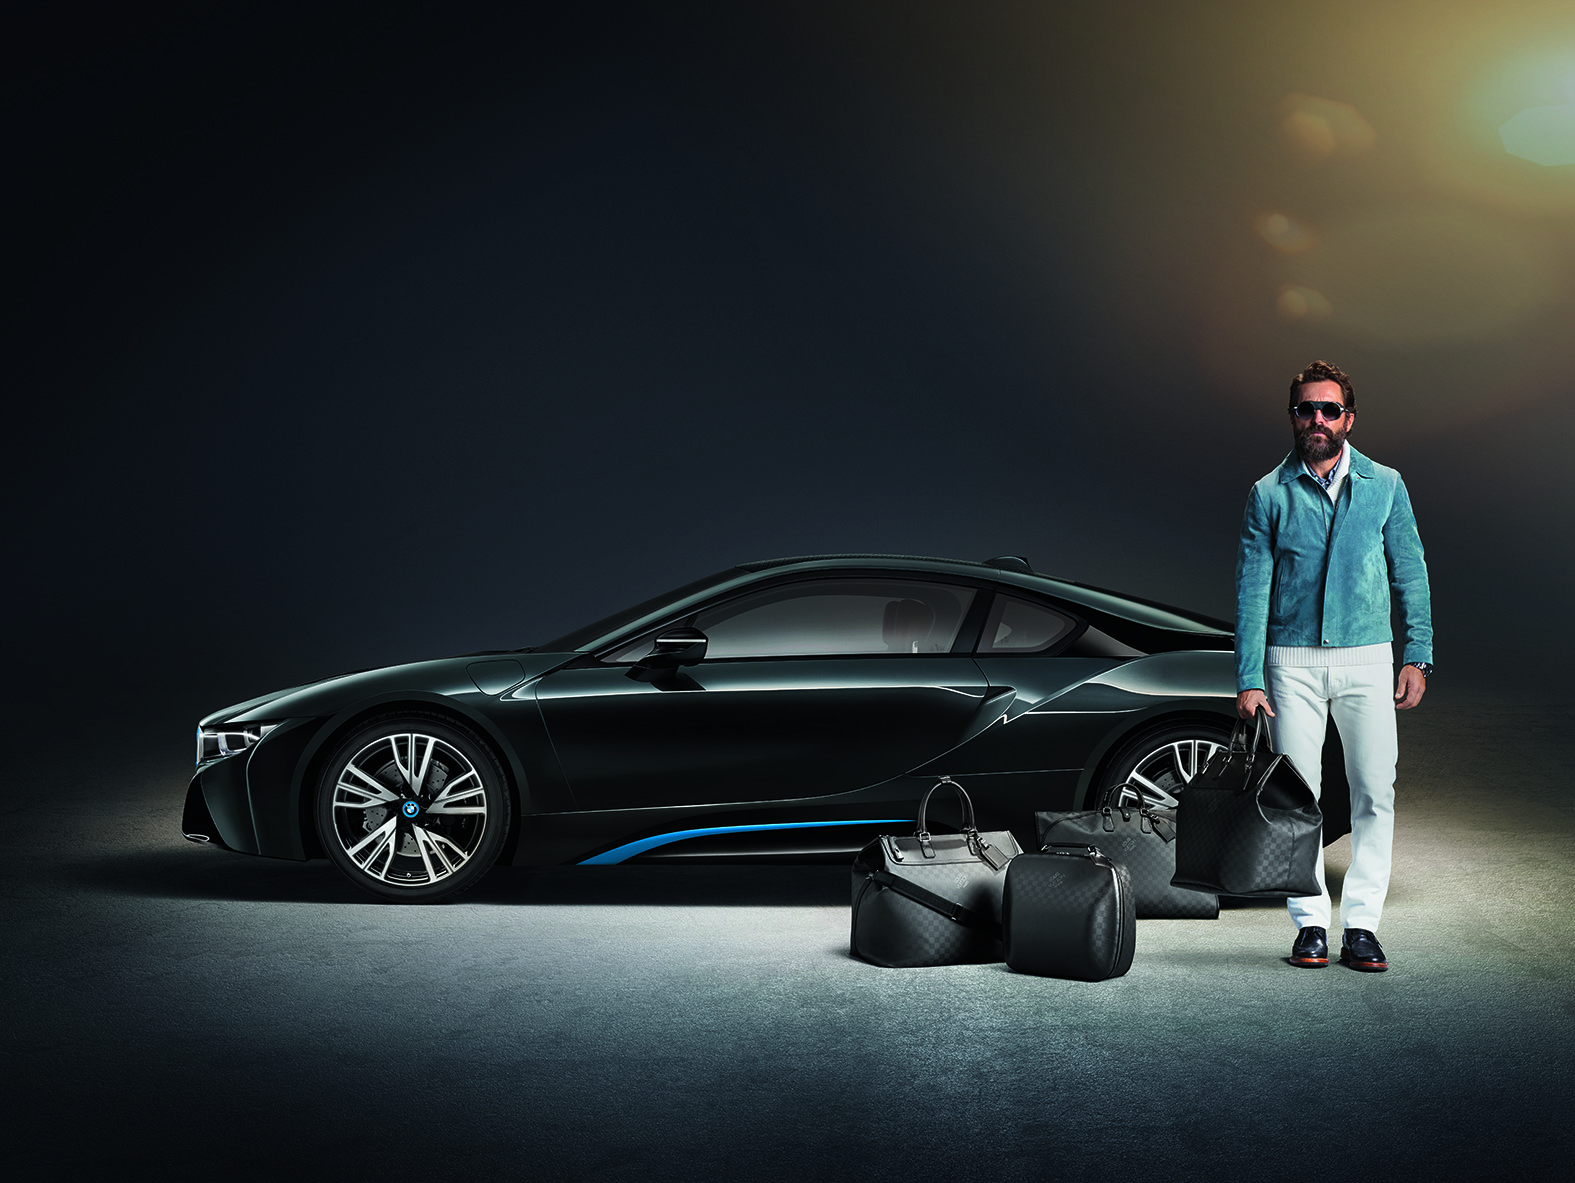 Louis Vuitton BMW i8 Collection